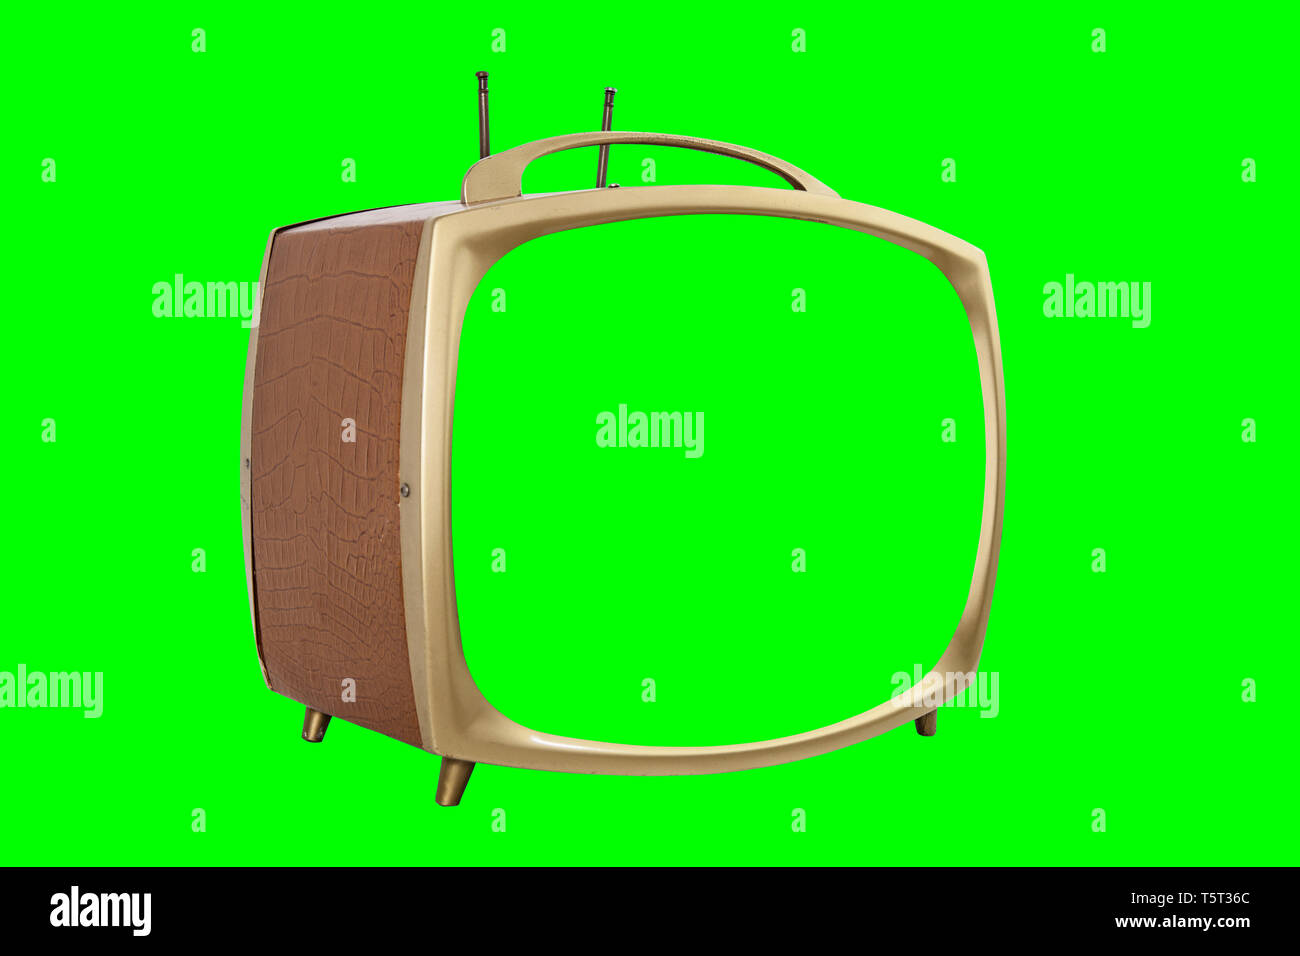 Retro 1950s portable television with chroma key green screen and background. - Stock Image